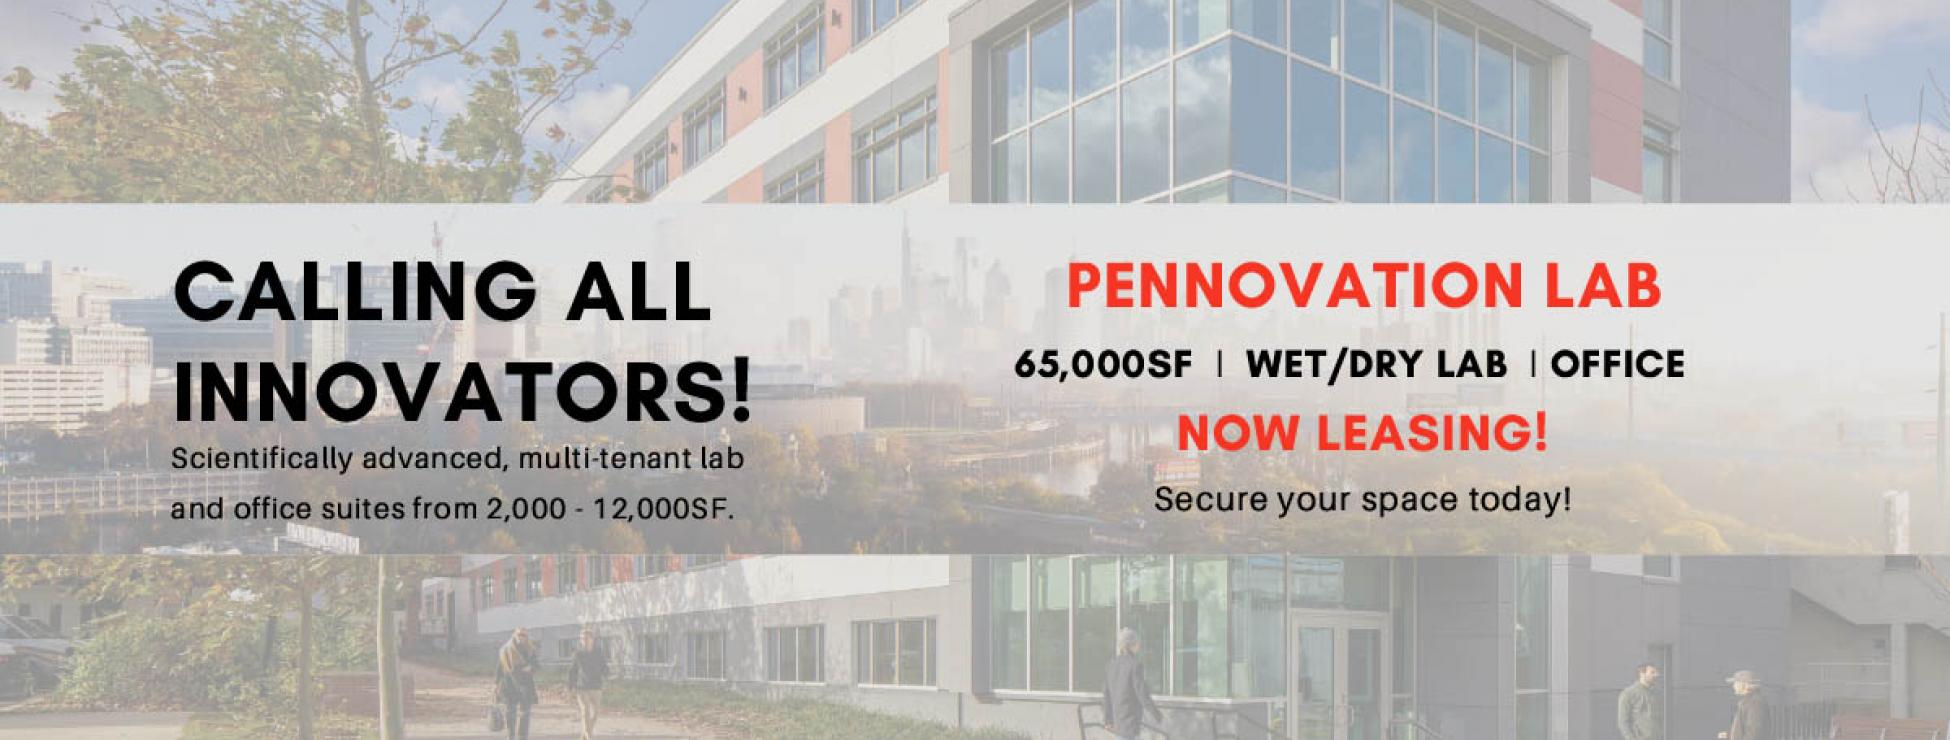 marketing msg for Pennovation Lab w exterior